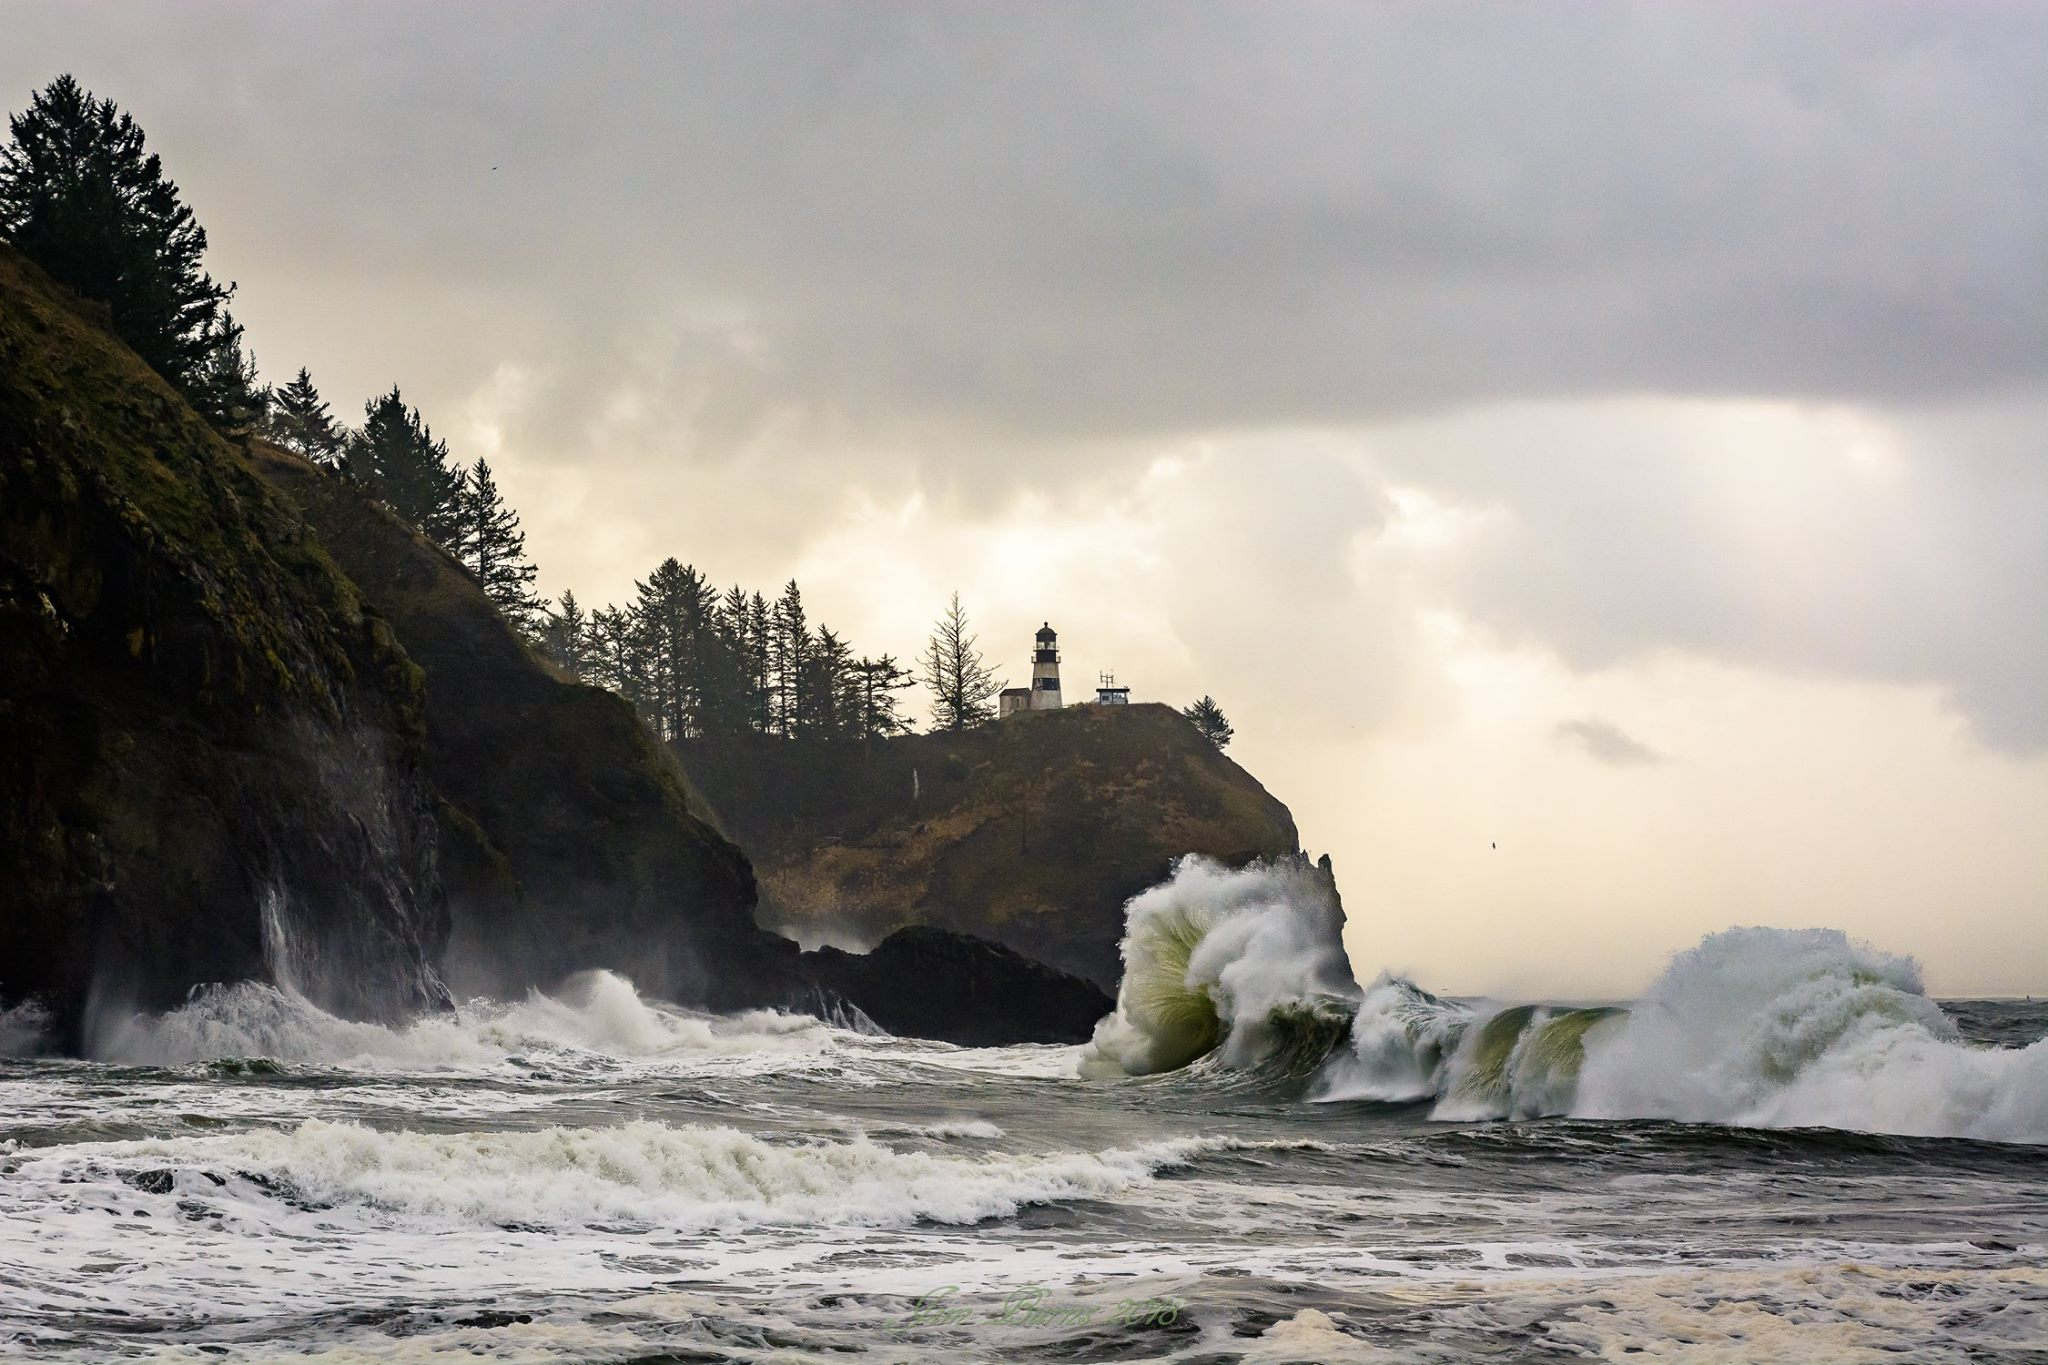 Waves crash at Cape Disappointment State Park. (Photo: Jim Burns)